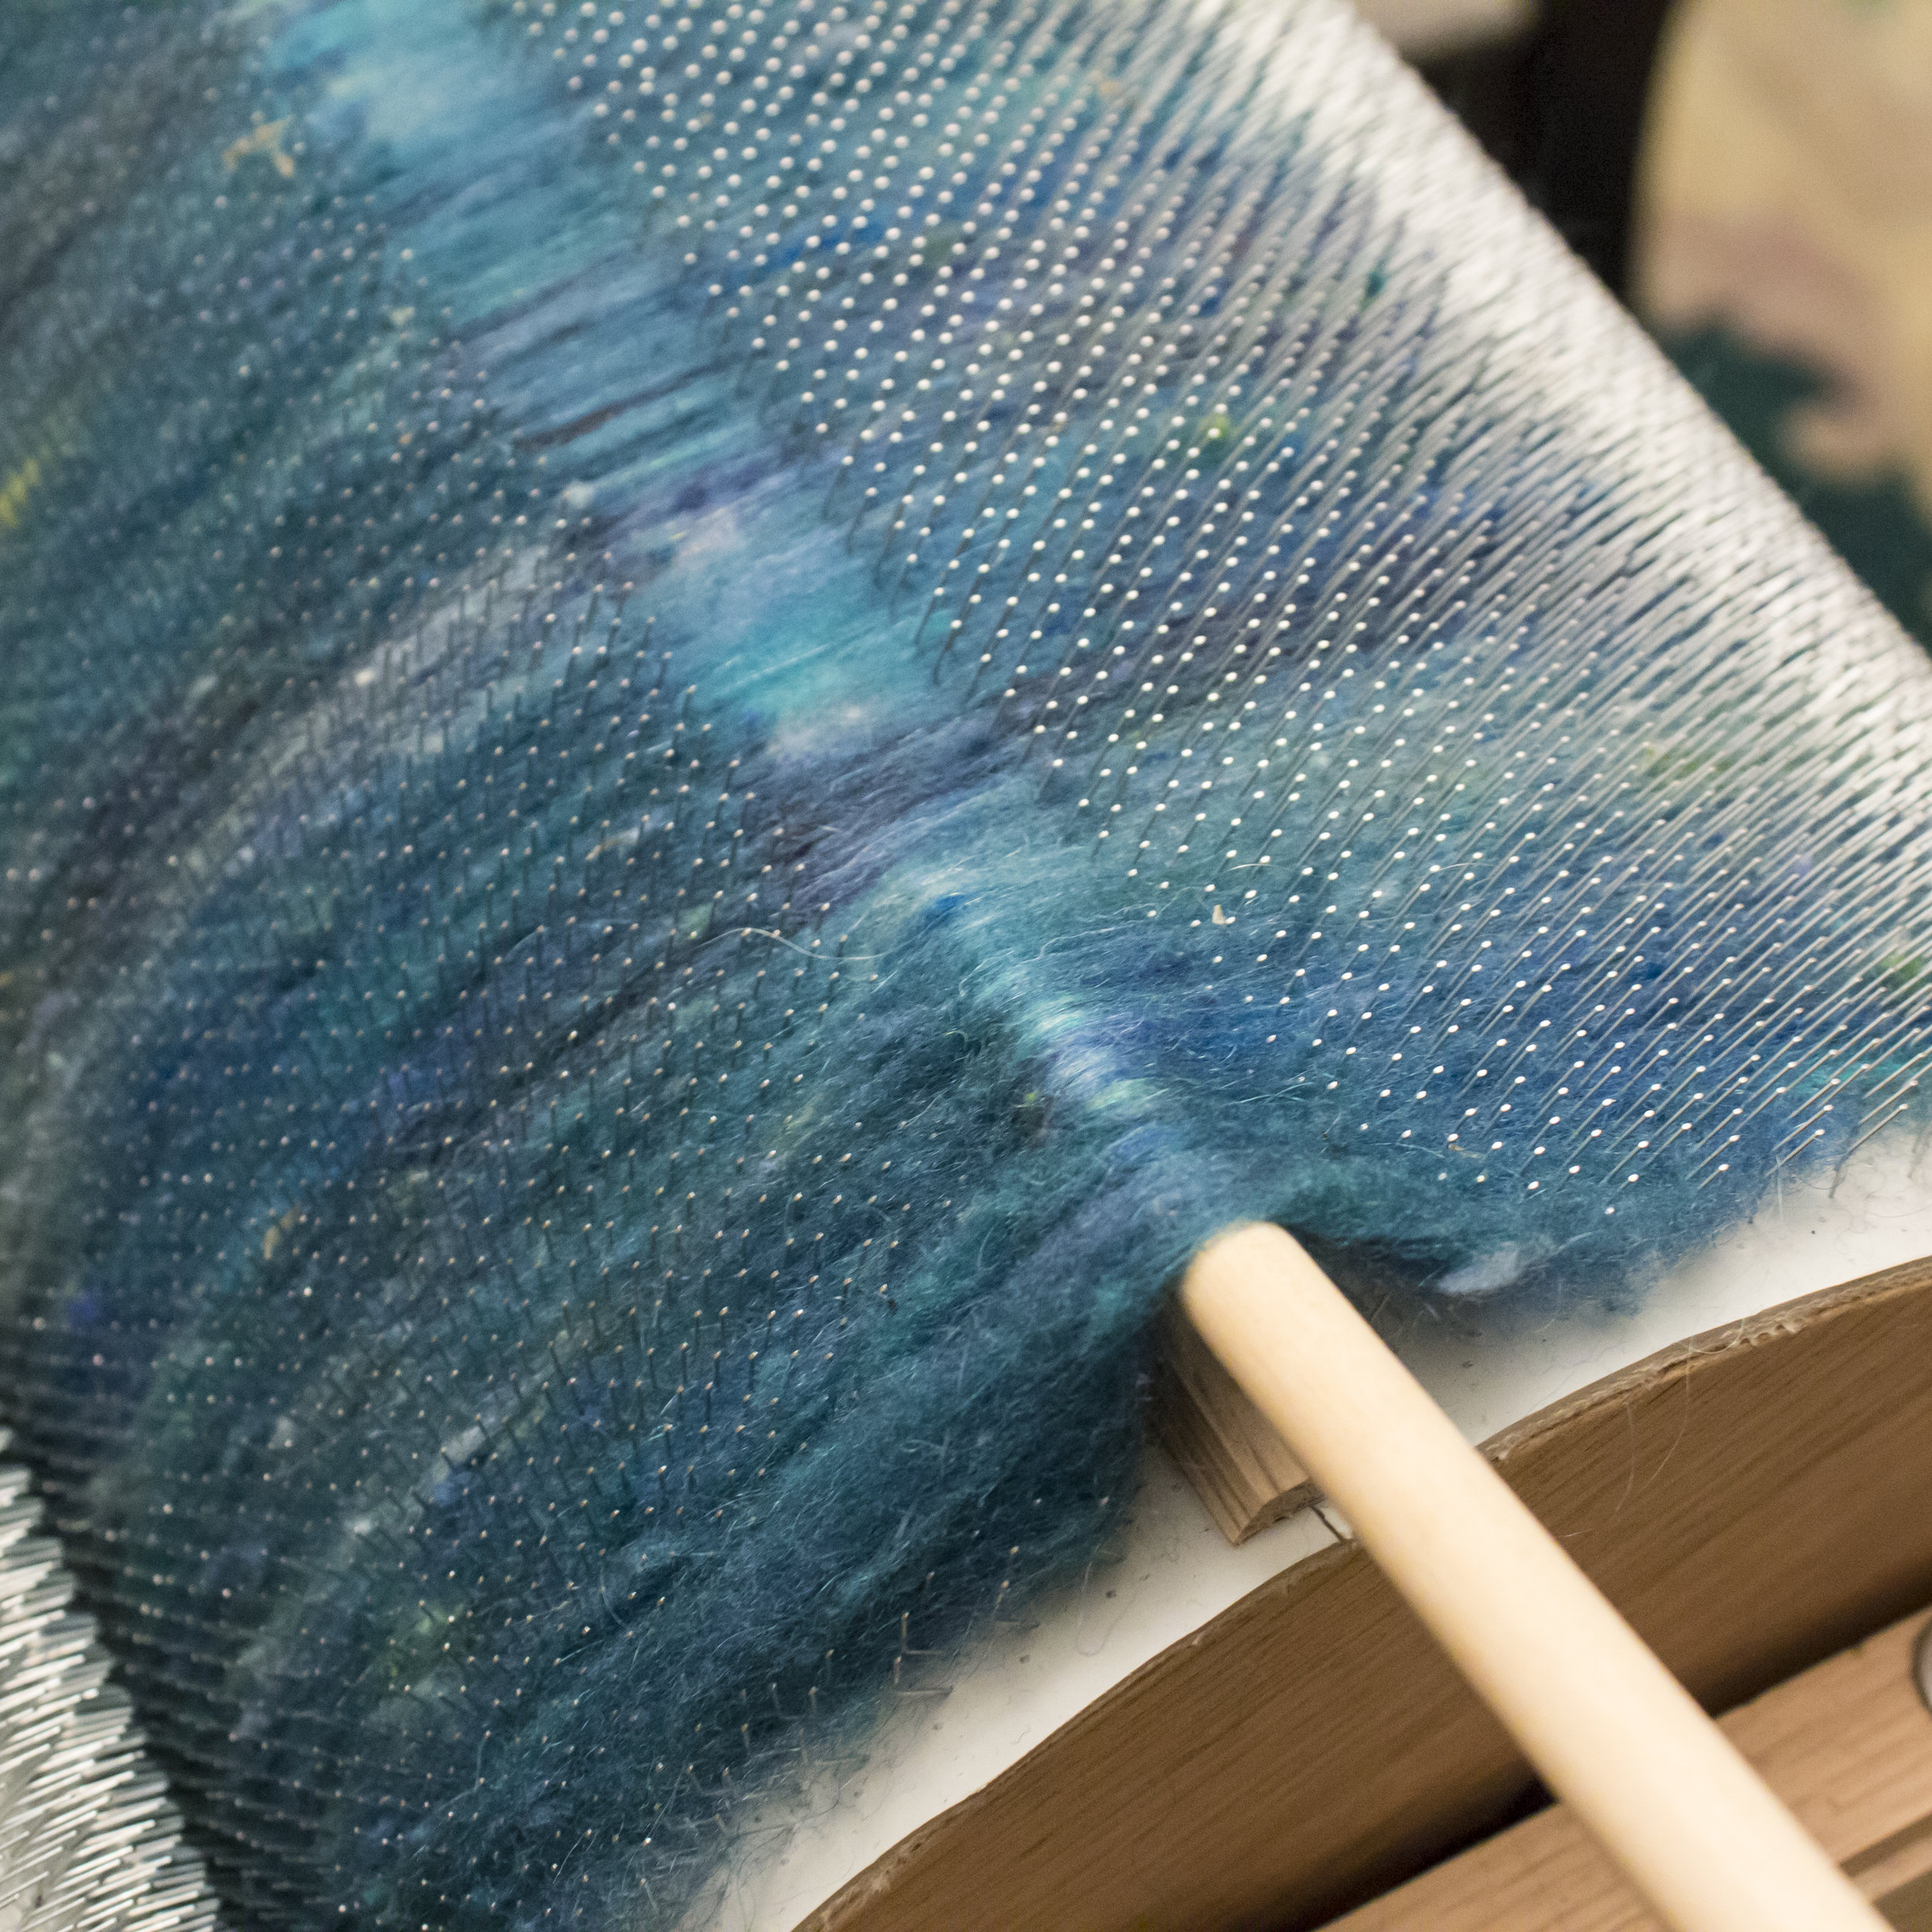 Using a doffing stick at the carding cloth seam. This is the strip you will need to pry up should you need to replace your cloth. Do not use your doffing stick anywhere else on the carder to prevent unnecessary damage.